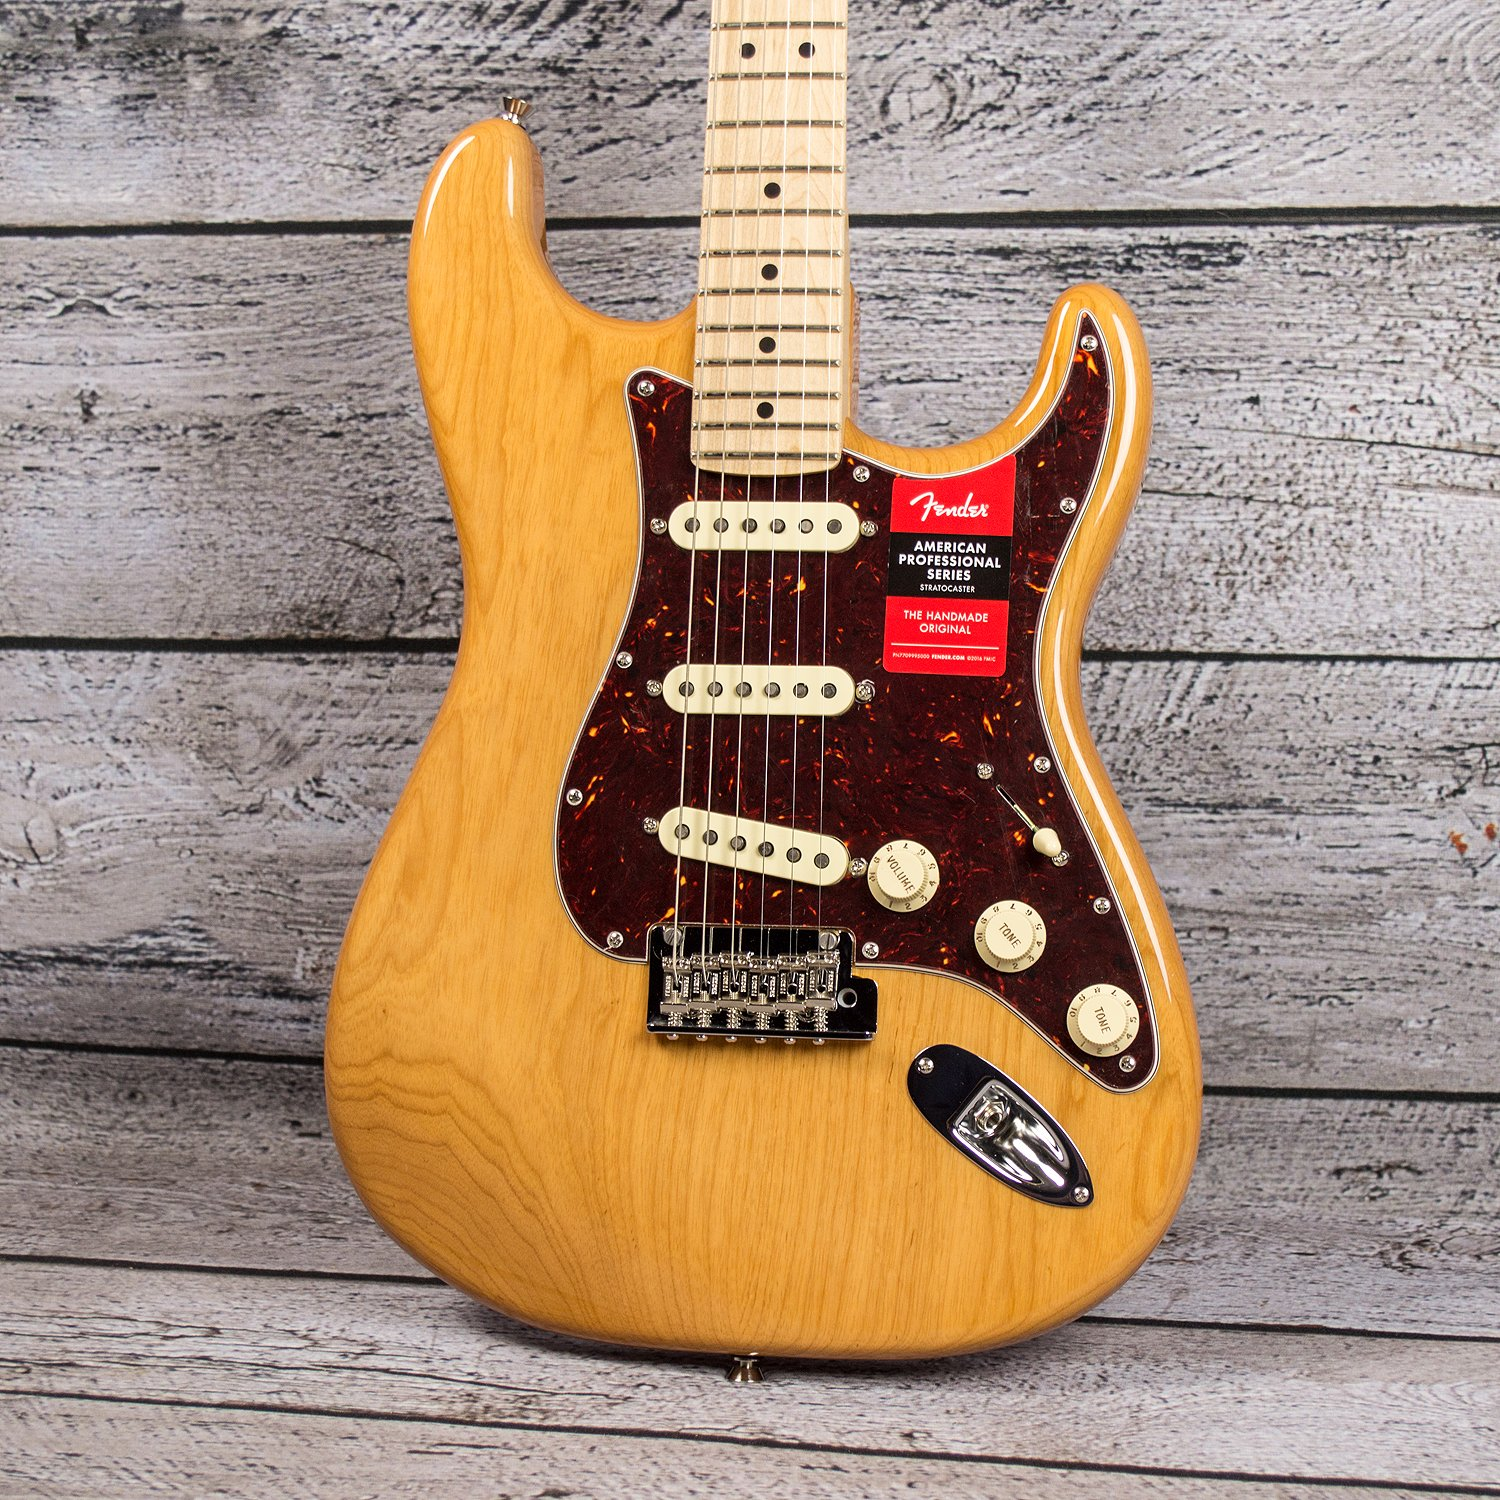 Fender 2019 Limited Edition American Professional Stratocaster - Maple Fingerboard, Aged Natural